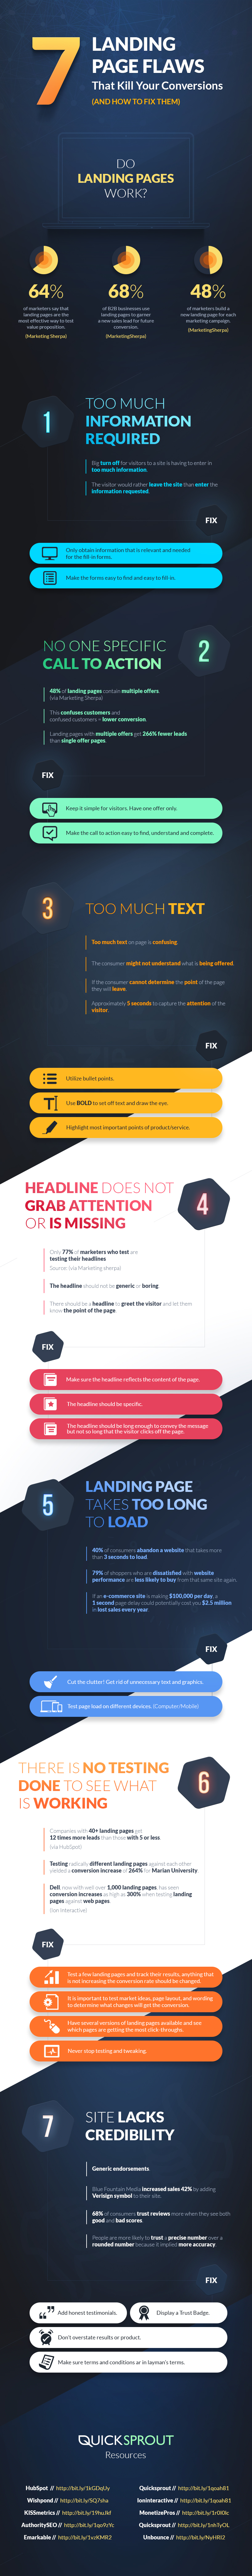 7 Landing Page Flaws That Kill Your Conversions